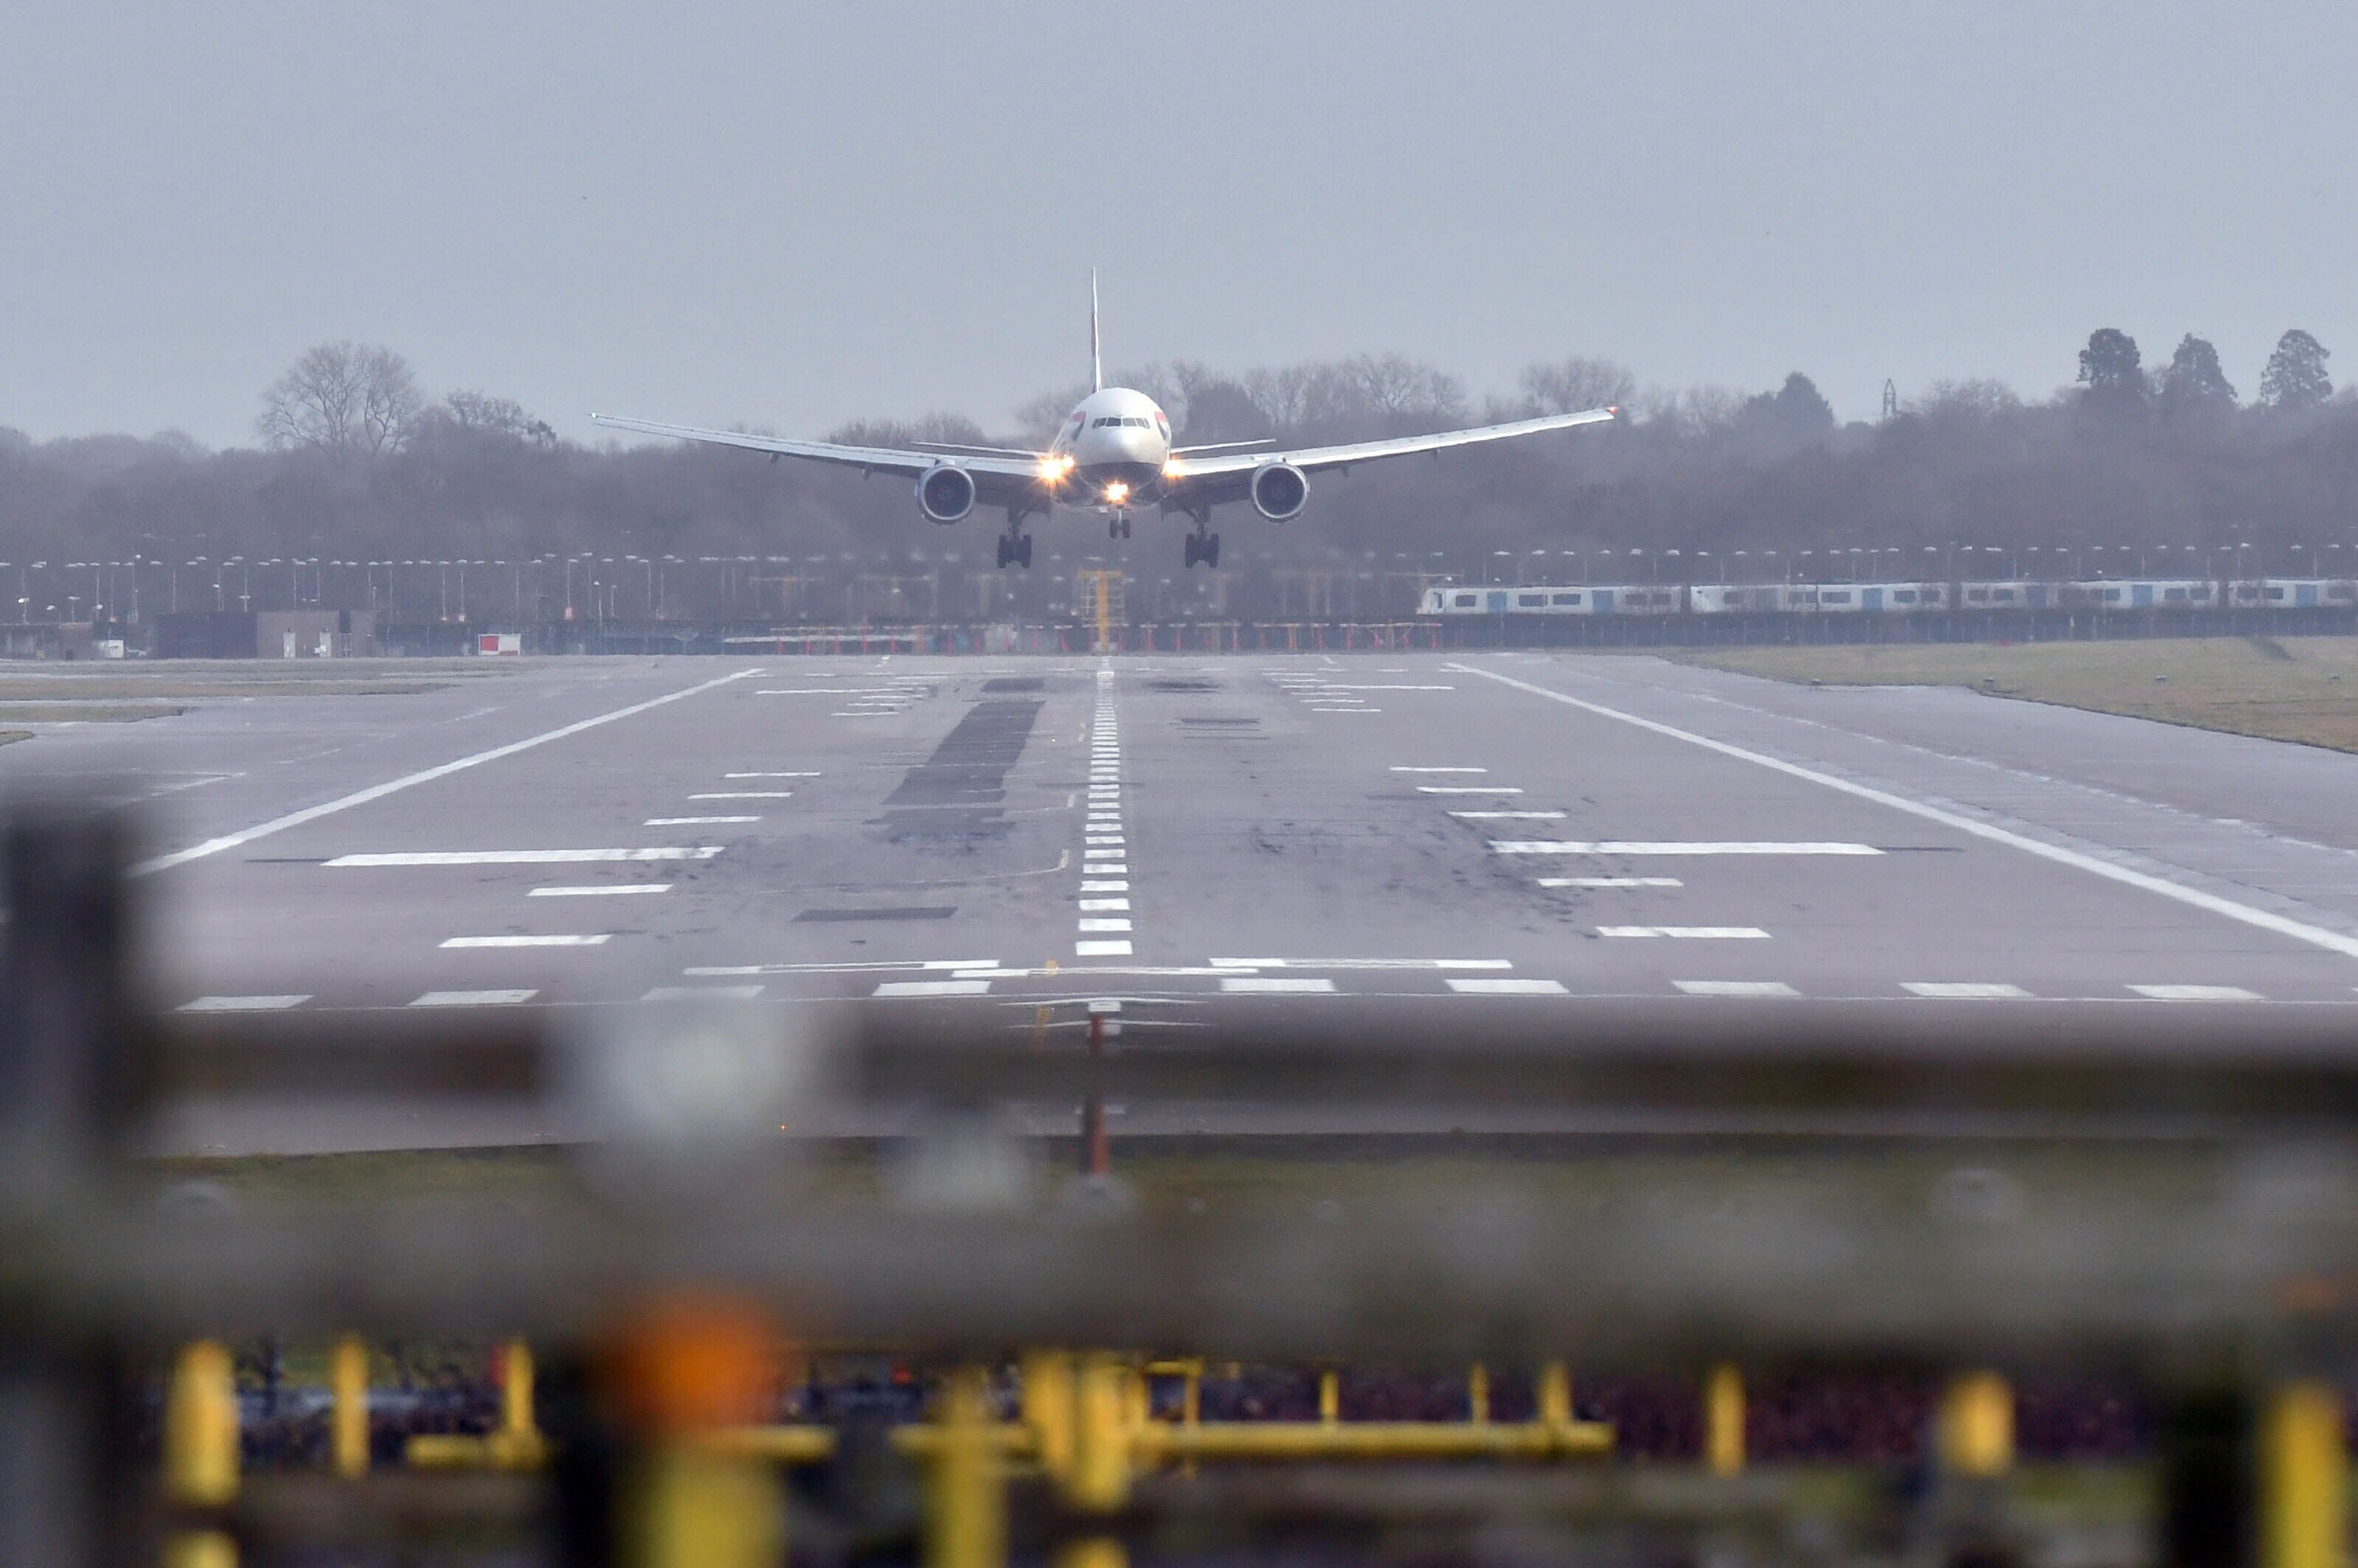 Britain's two major airports to invest millions in anti-drone equipment